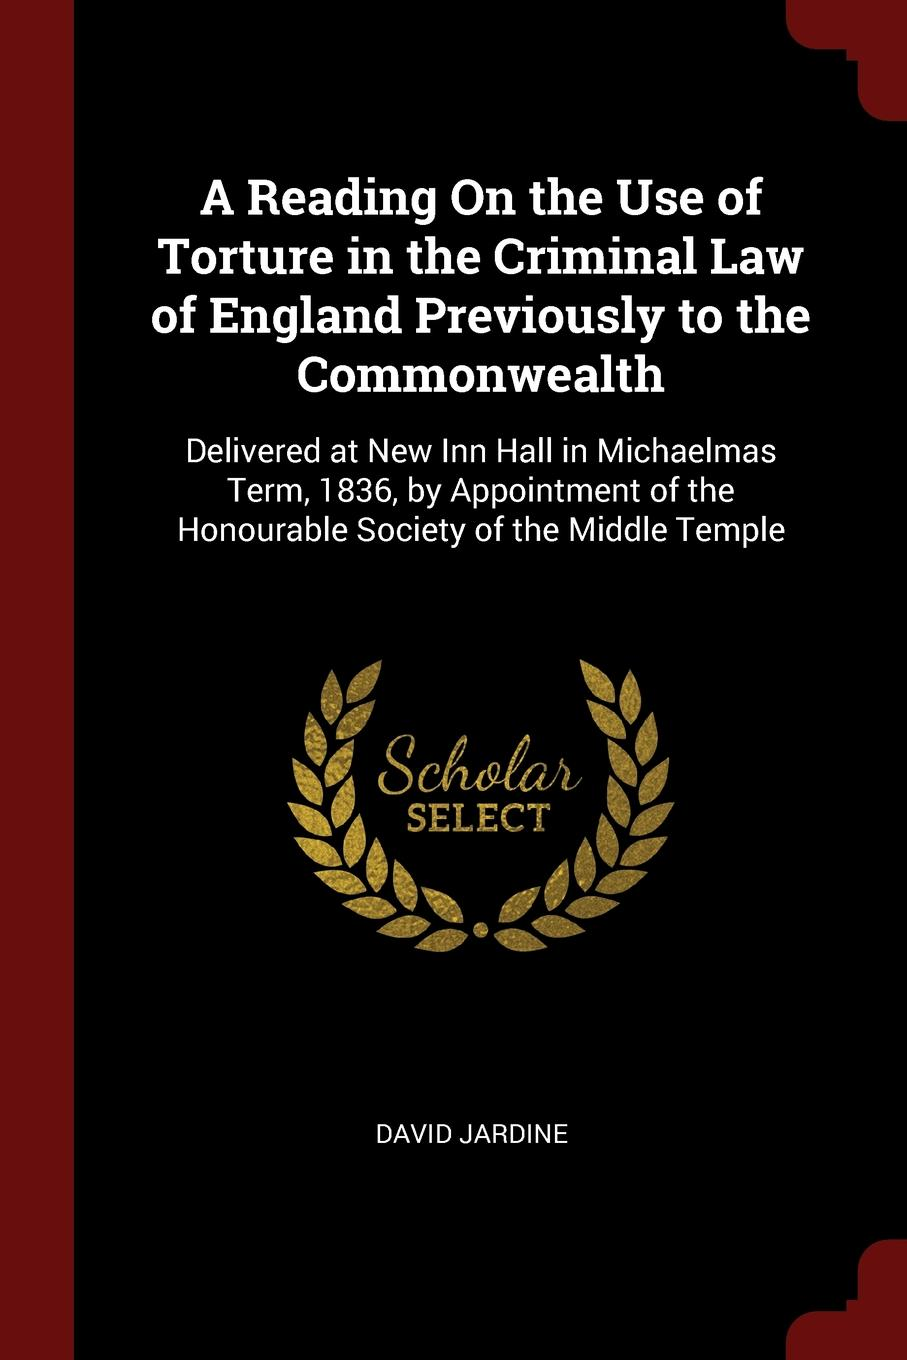 David Jardine A Reading On the Use of Torture in Criminal Law England Previously to Commonwealth. Delivered at New Inn Hall Michaelmas Term, 1836, by Appointment Honourable Society Middle Temple